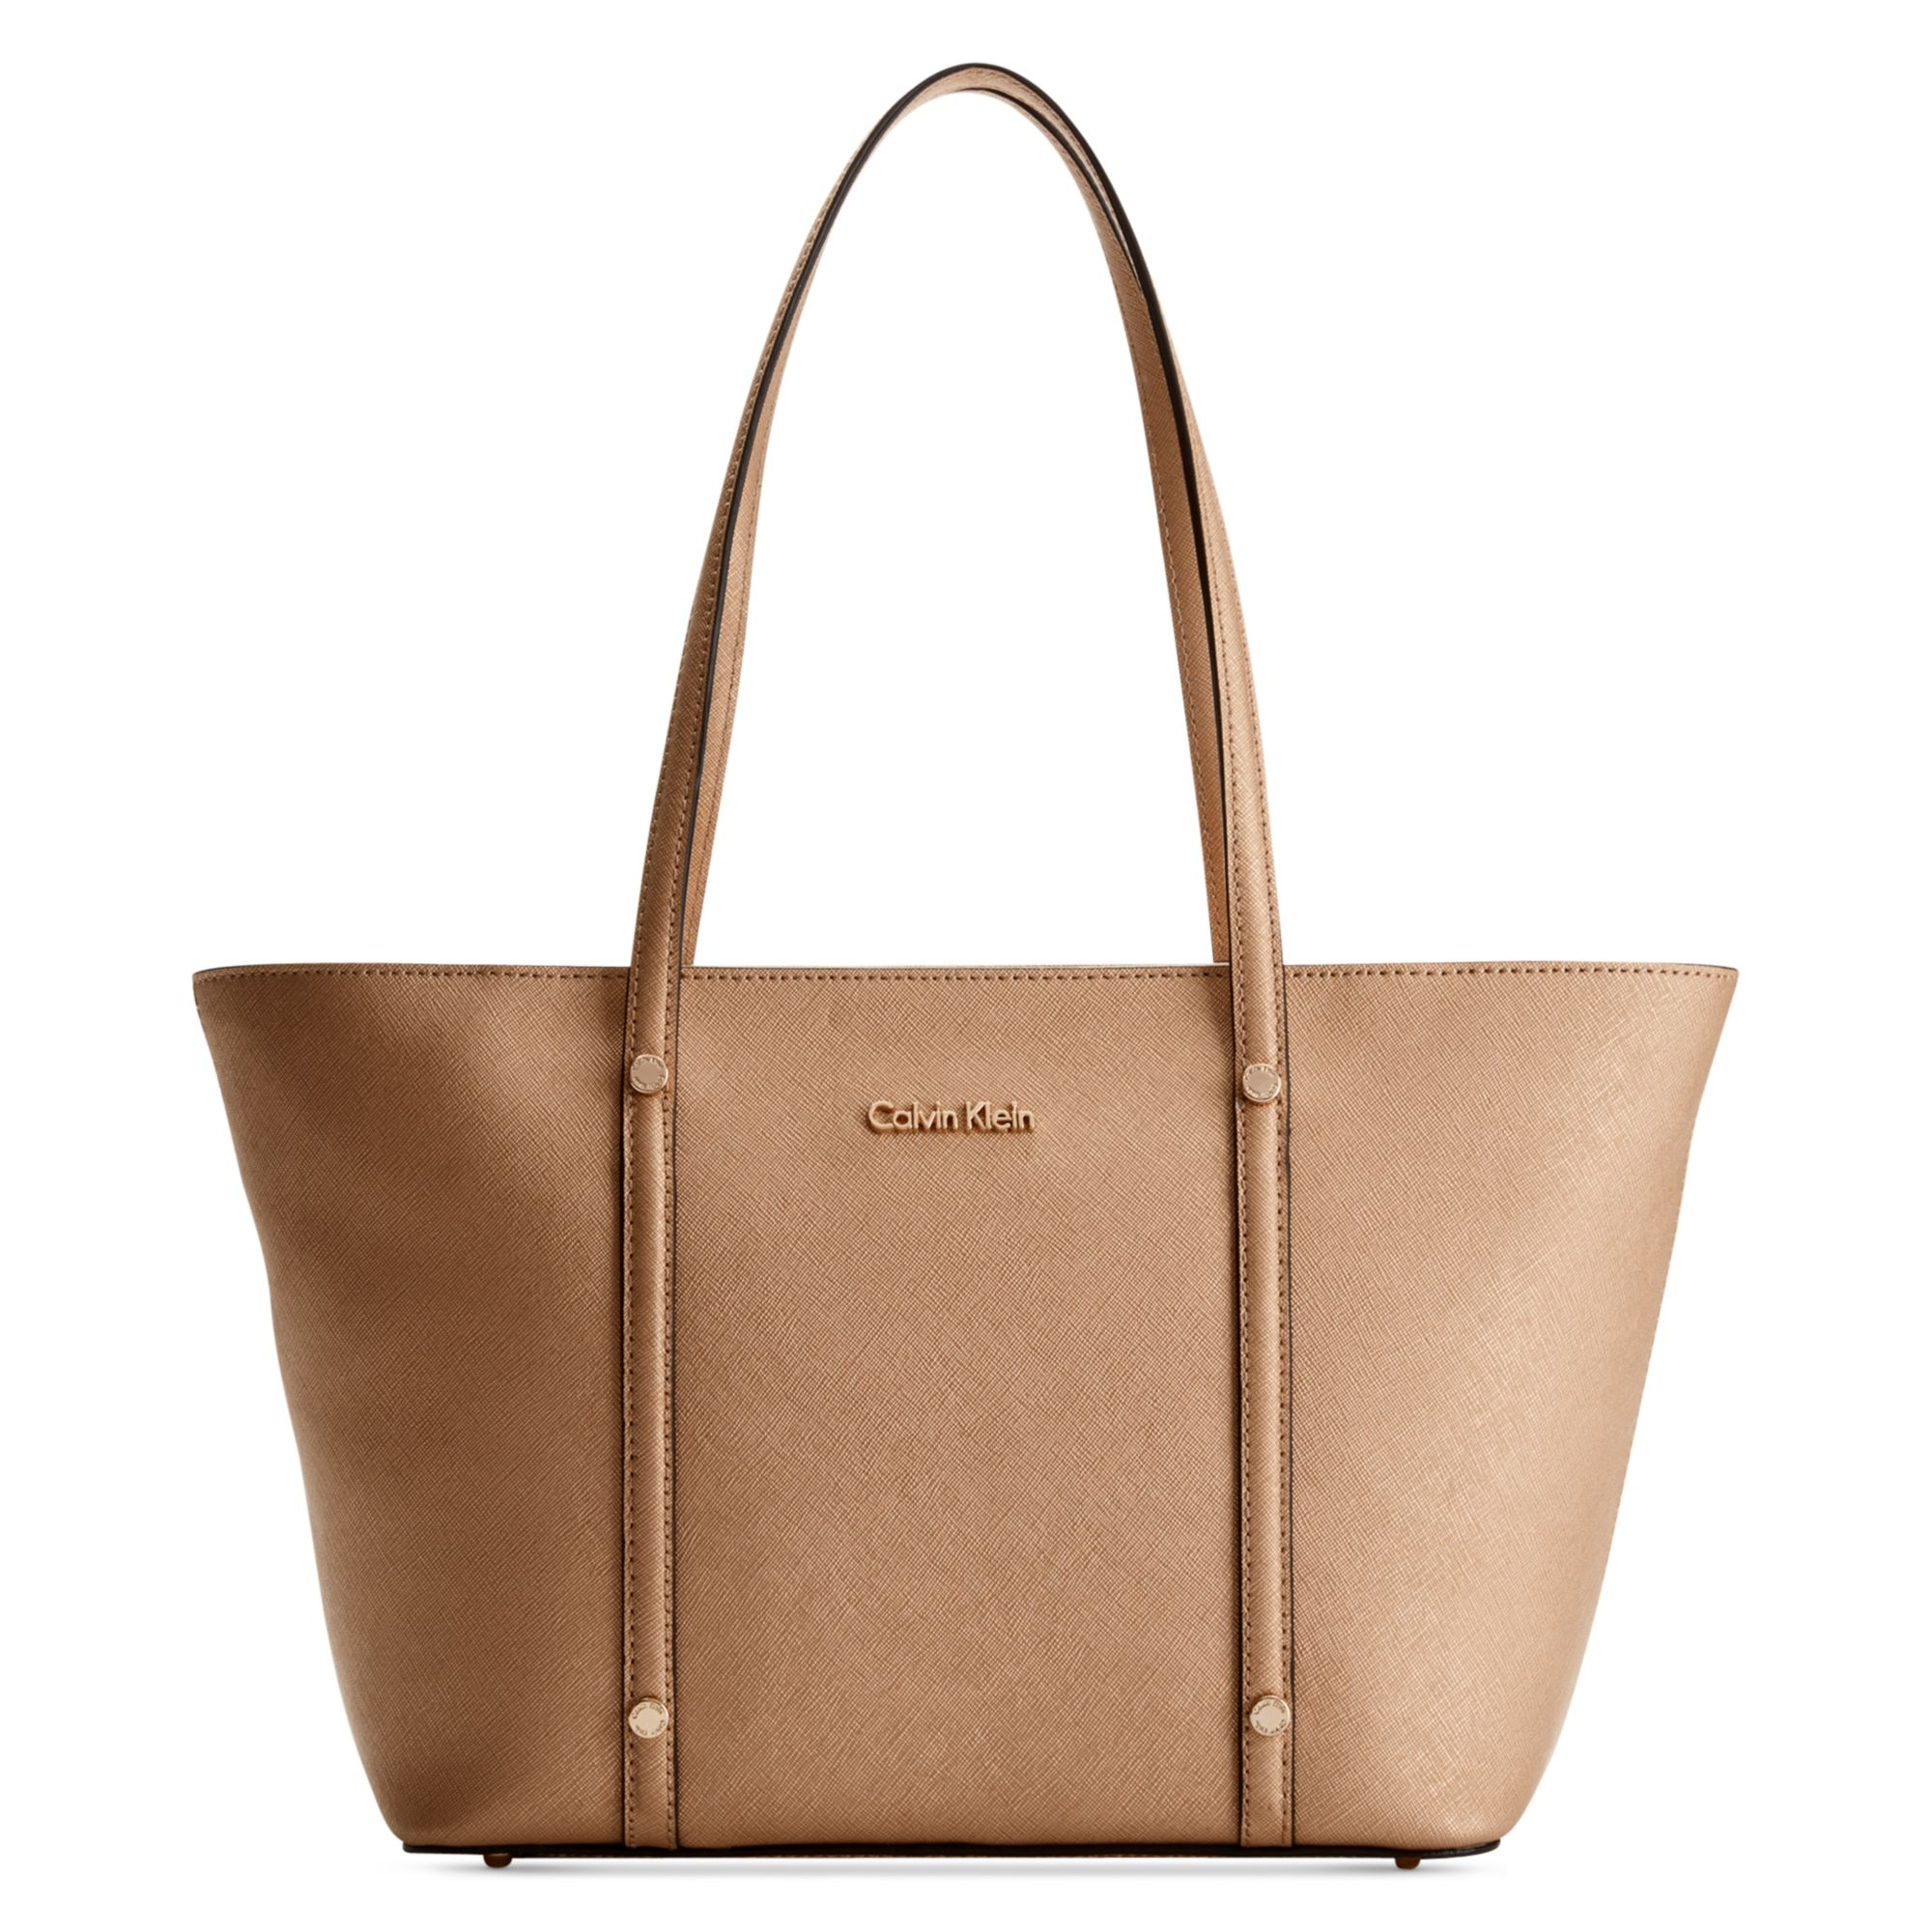 calvin klein key items saffiano tote in gold lyst. Black Bedroom Furniture Sets. Home Design Ideas